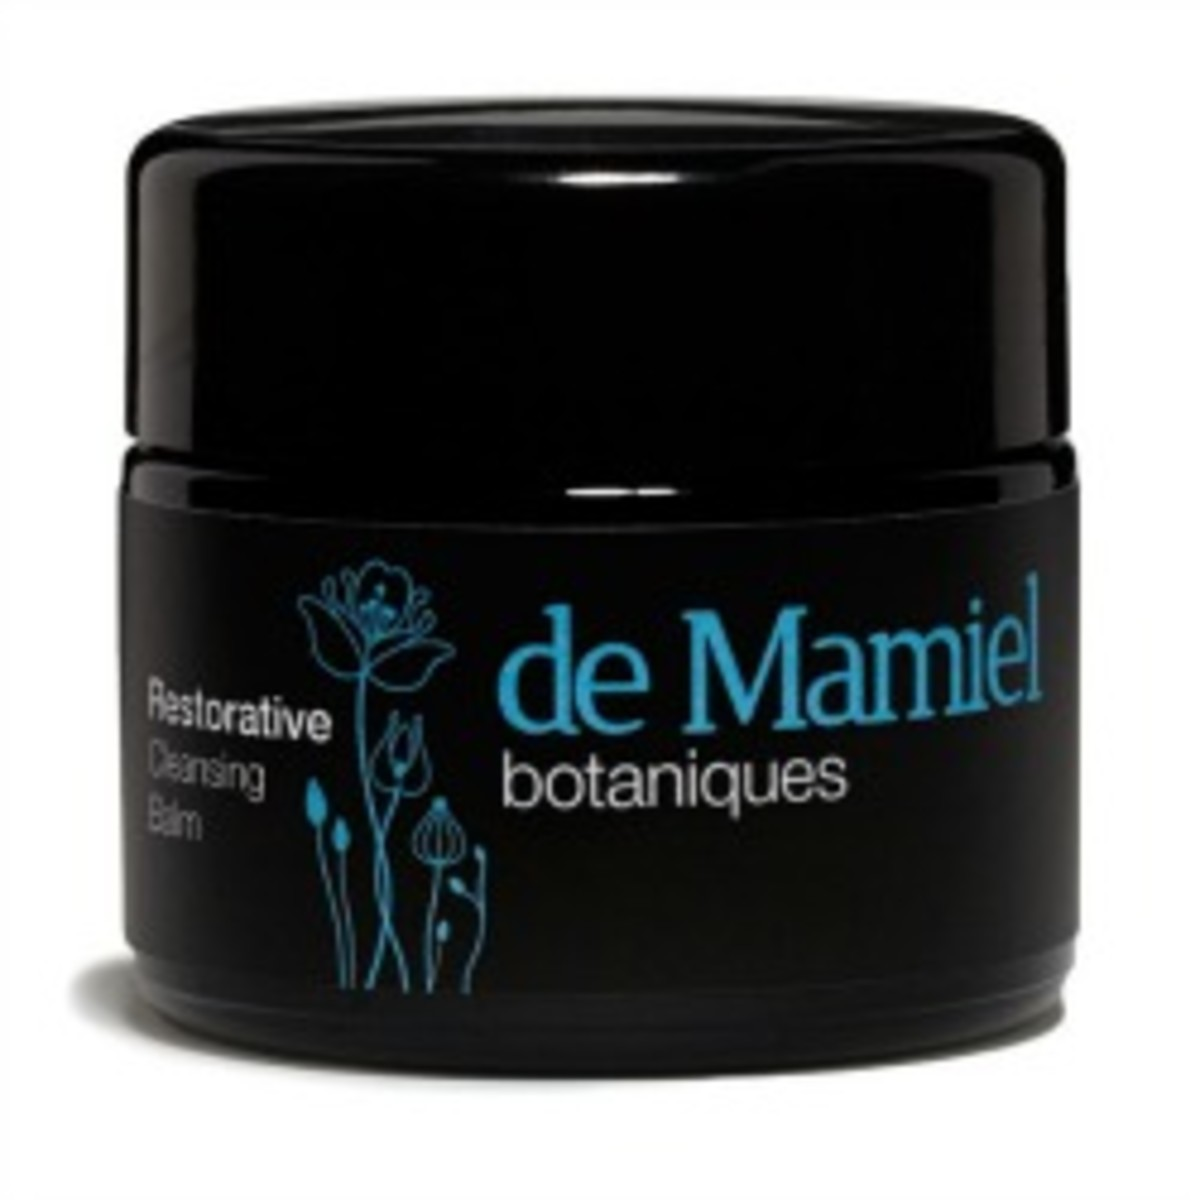 Probiotic Benefits in Skincare de Mamiel